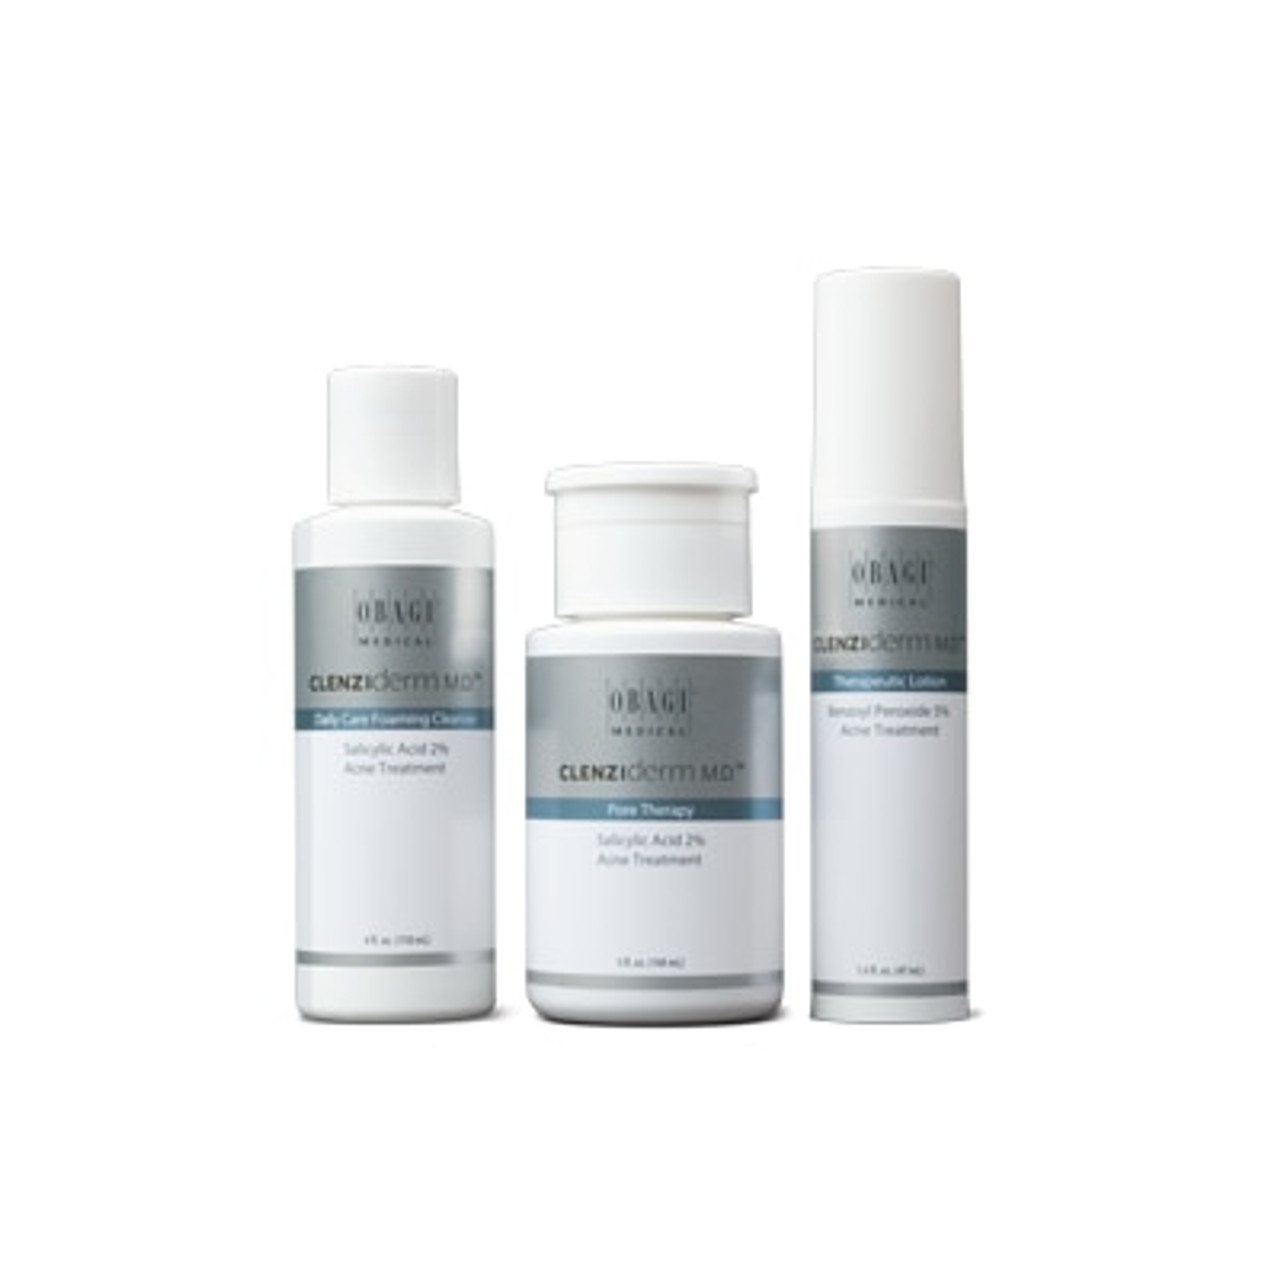 CLENZIderm Pore Therapy